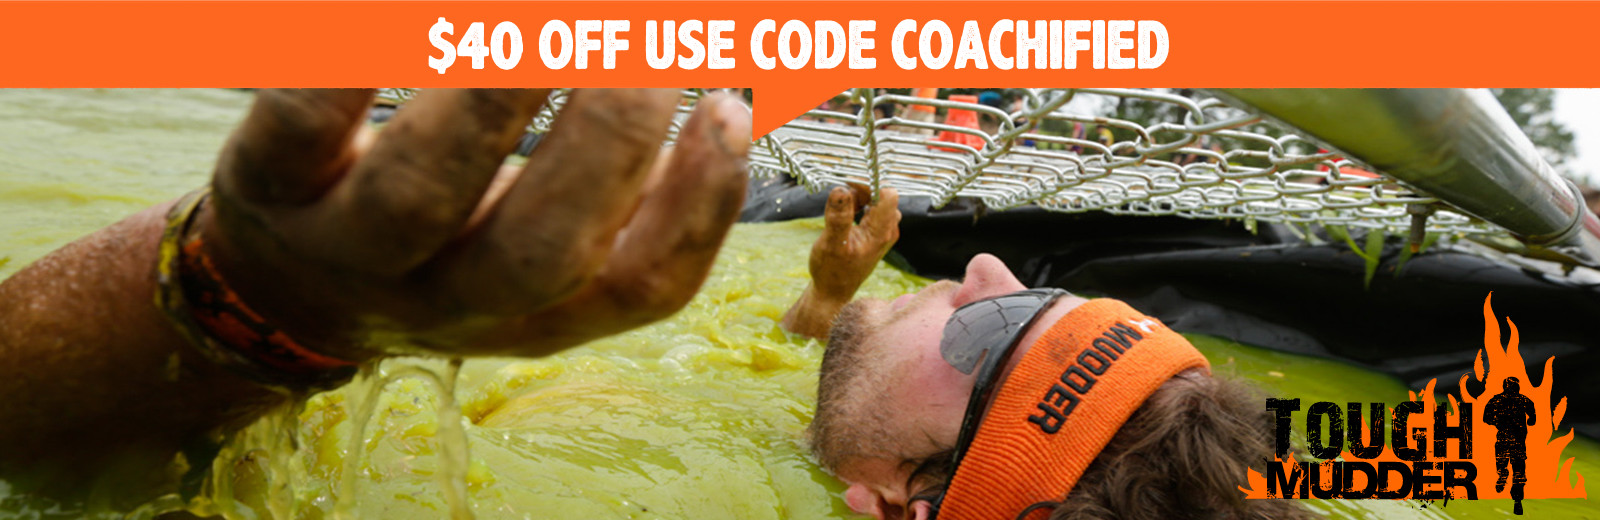 Tough mudder coupon code